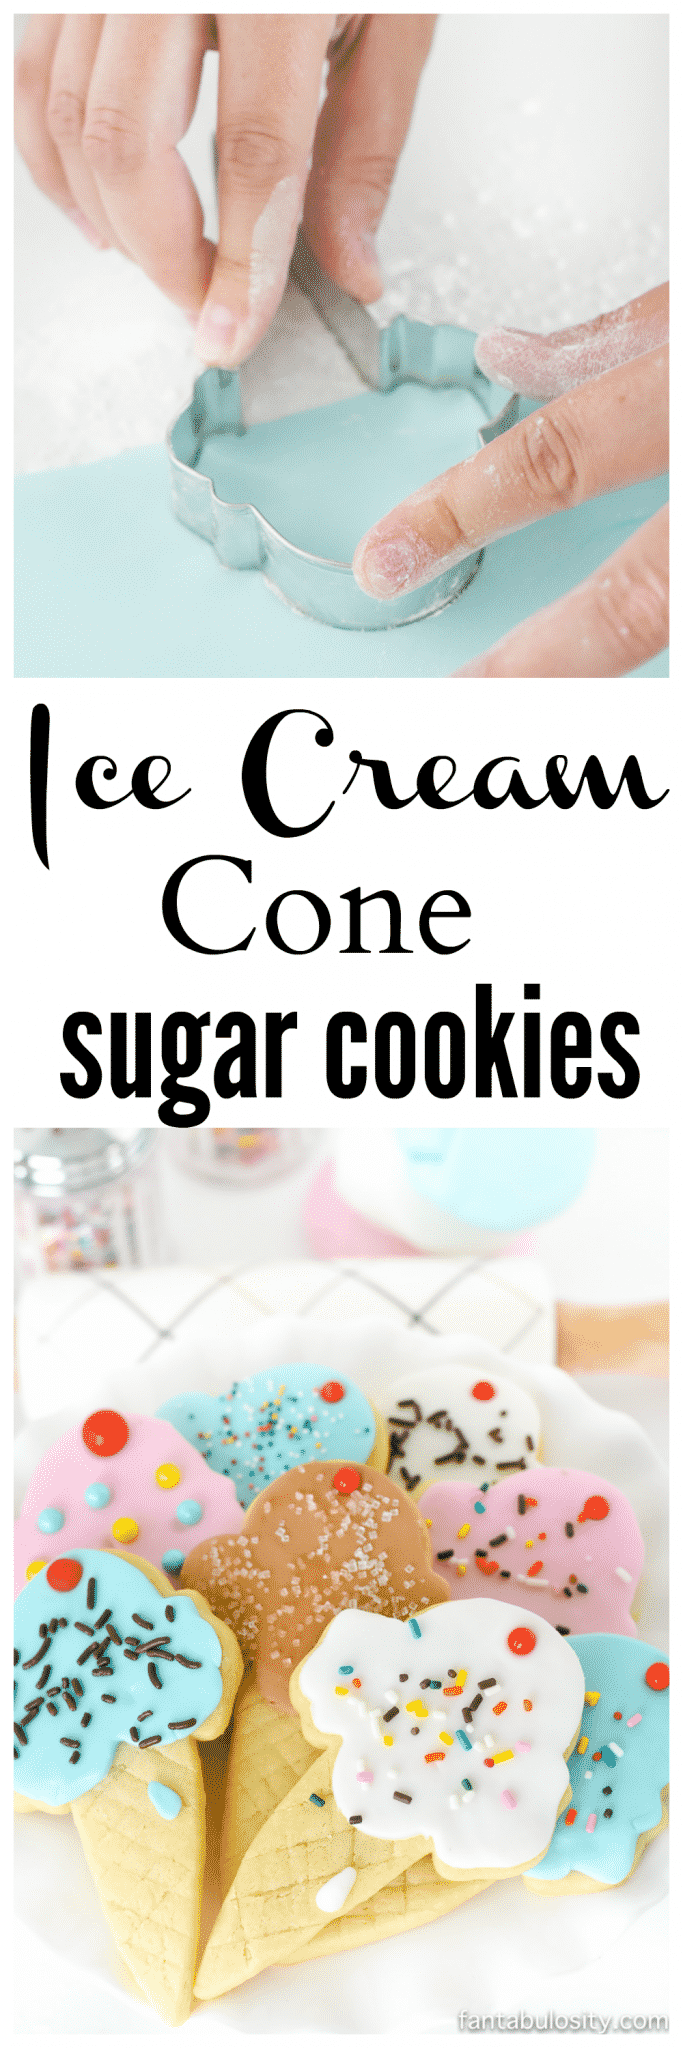 OMG these are SOOO cute! Ice cream cone sugar cookies! Using fondant instead of icing is so much easier!